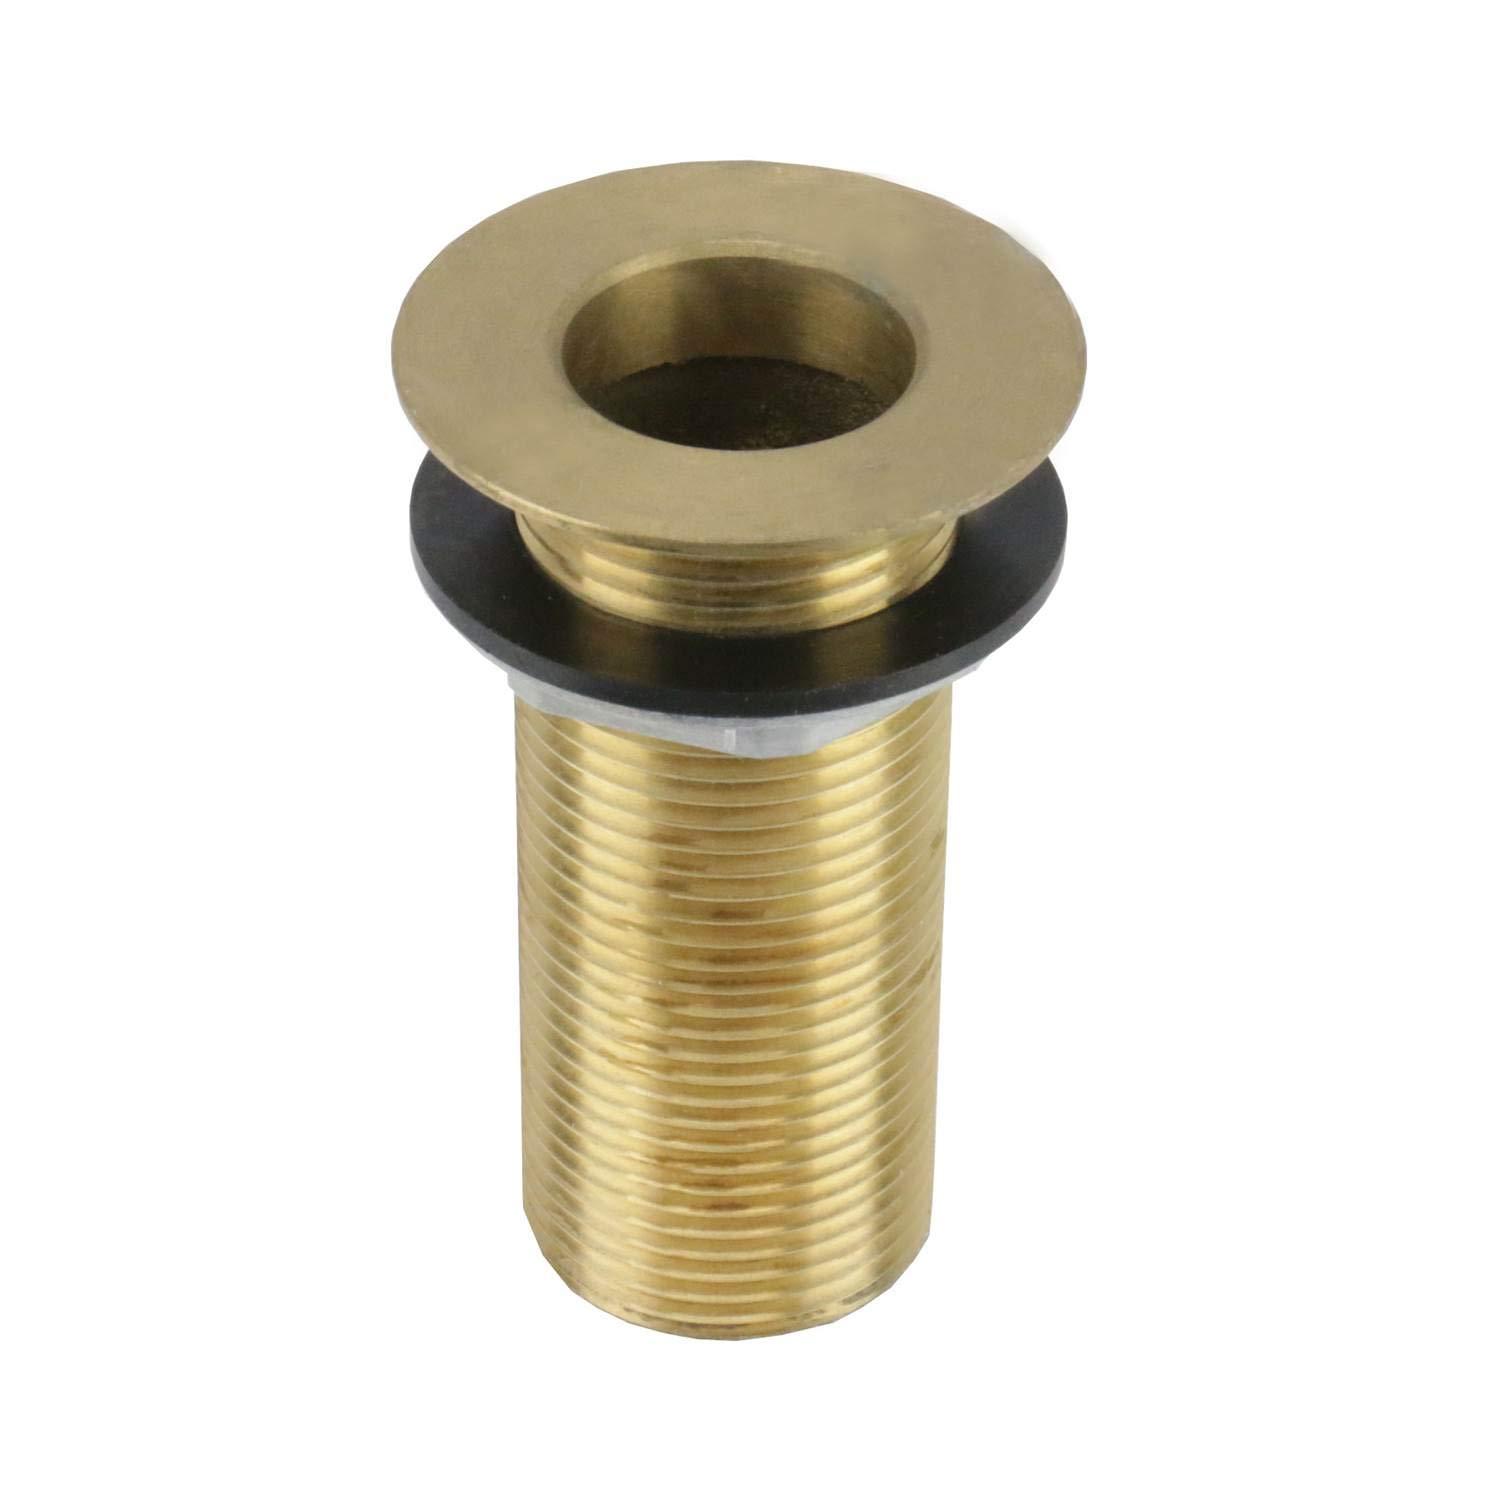 AA Faucet Brass Bar Sink Drain 1'' Nominal Pipe Size, 2'' Diameter Drain Opening (3-1/4'' Length) by AA Faucet